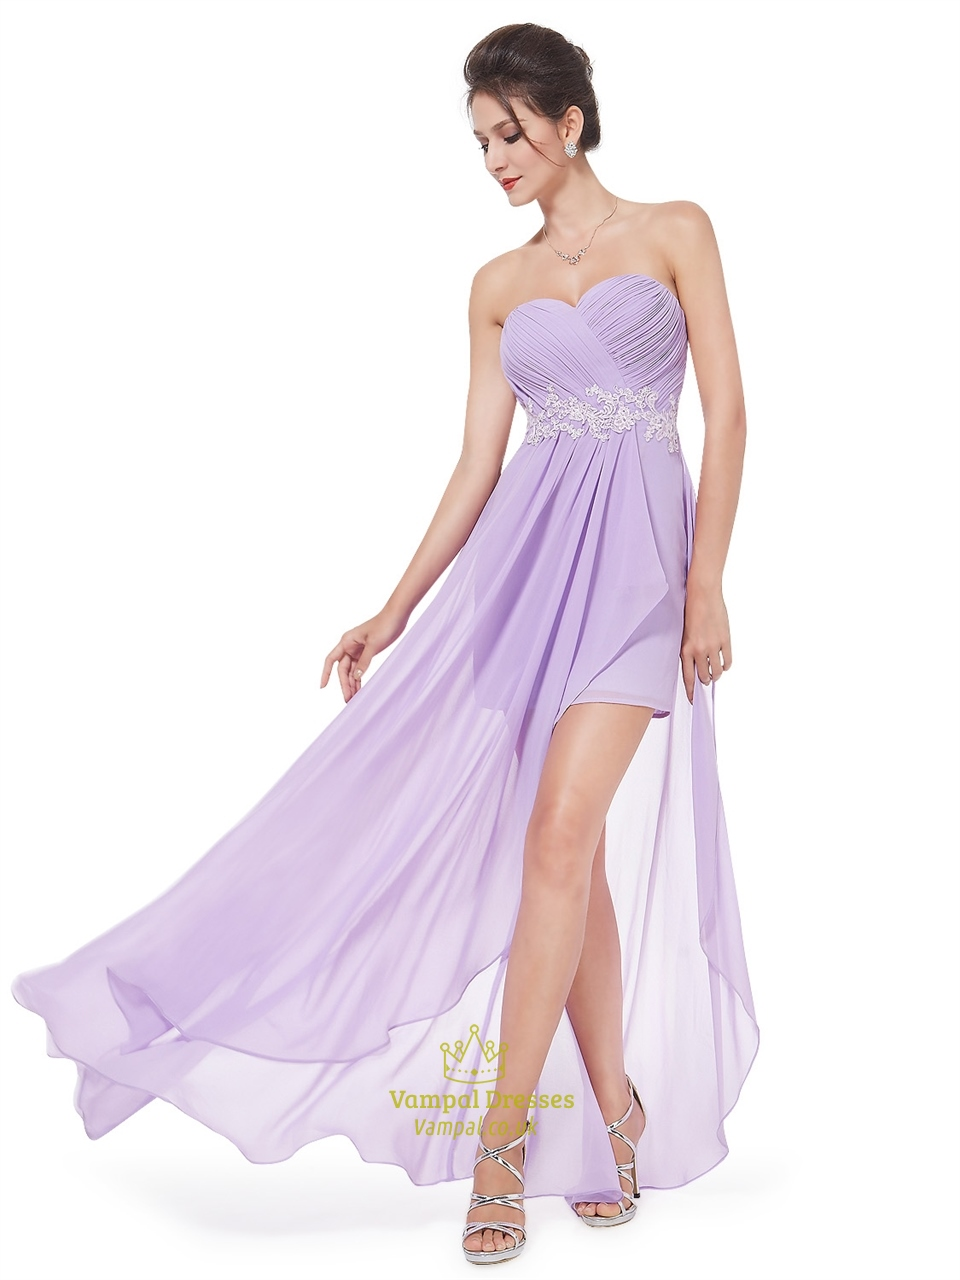 Lilac Chiffon Sweetheart High Low Bridesmaid Dress With